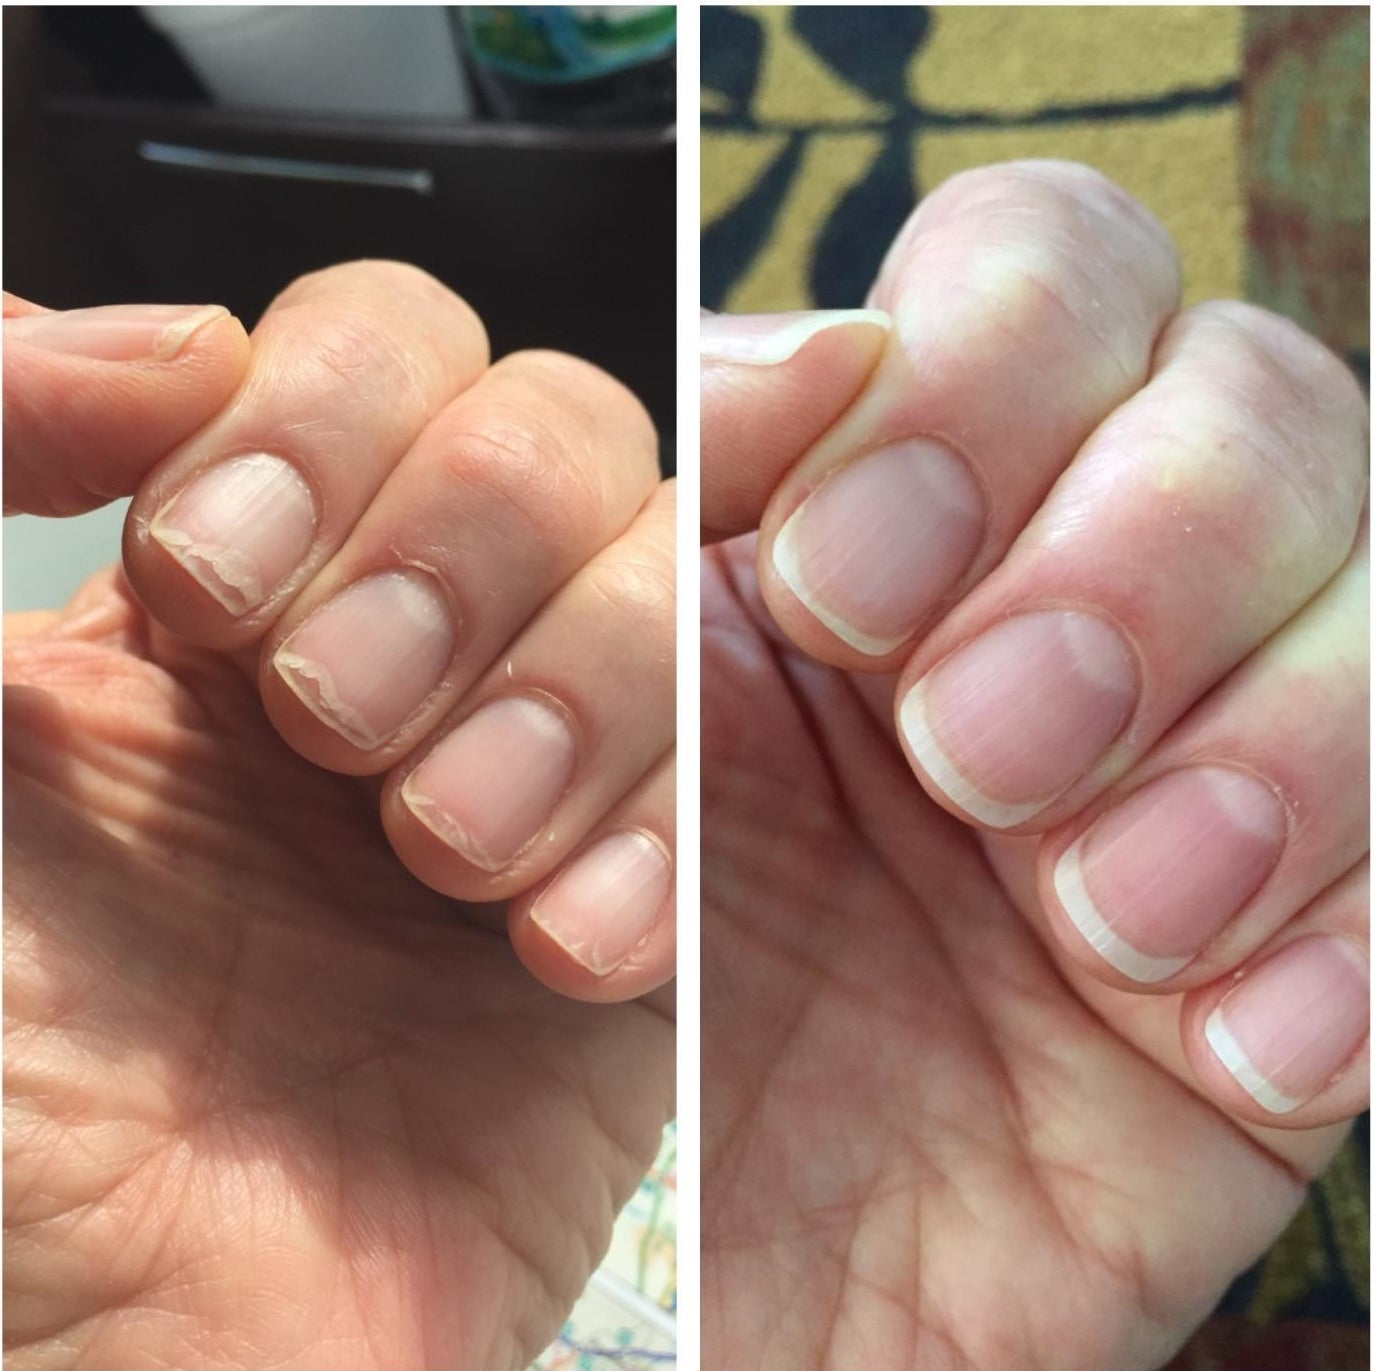 left: peeling chipped nails  right: pristine healthy nails